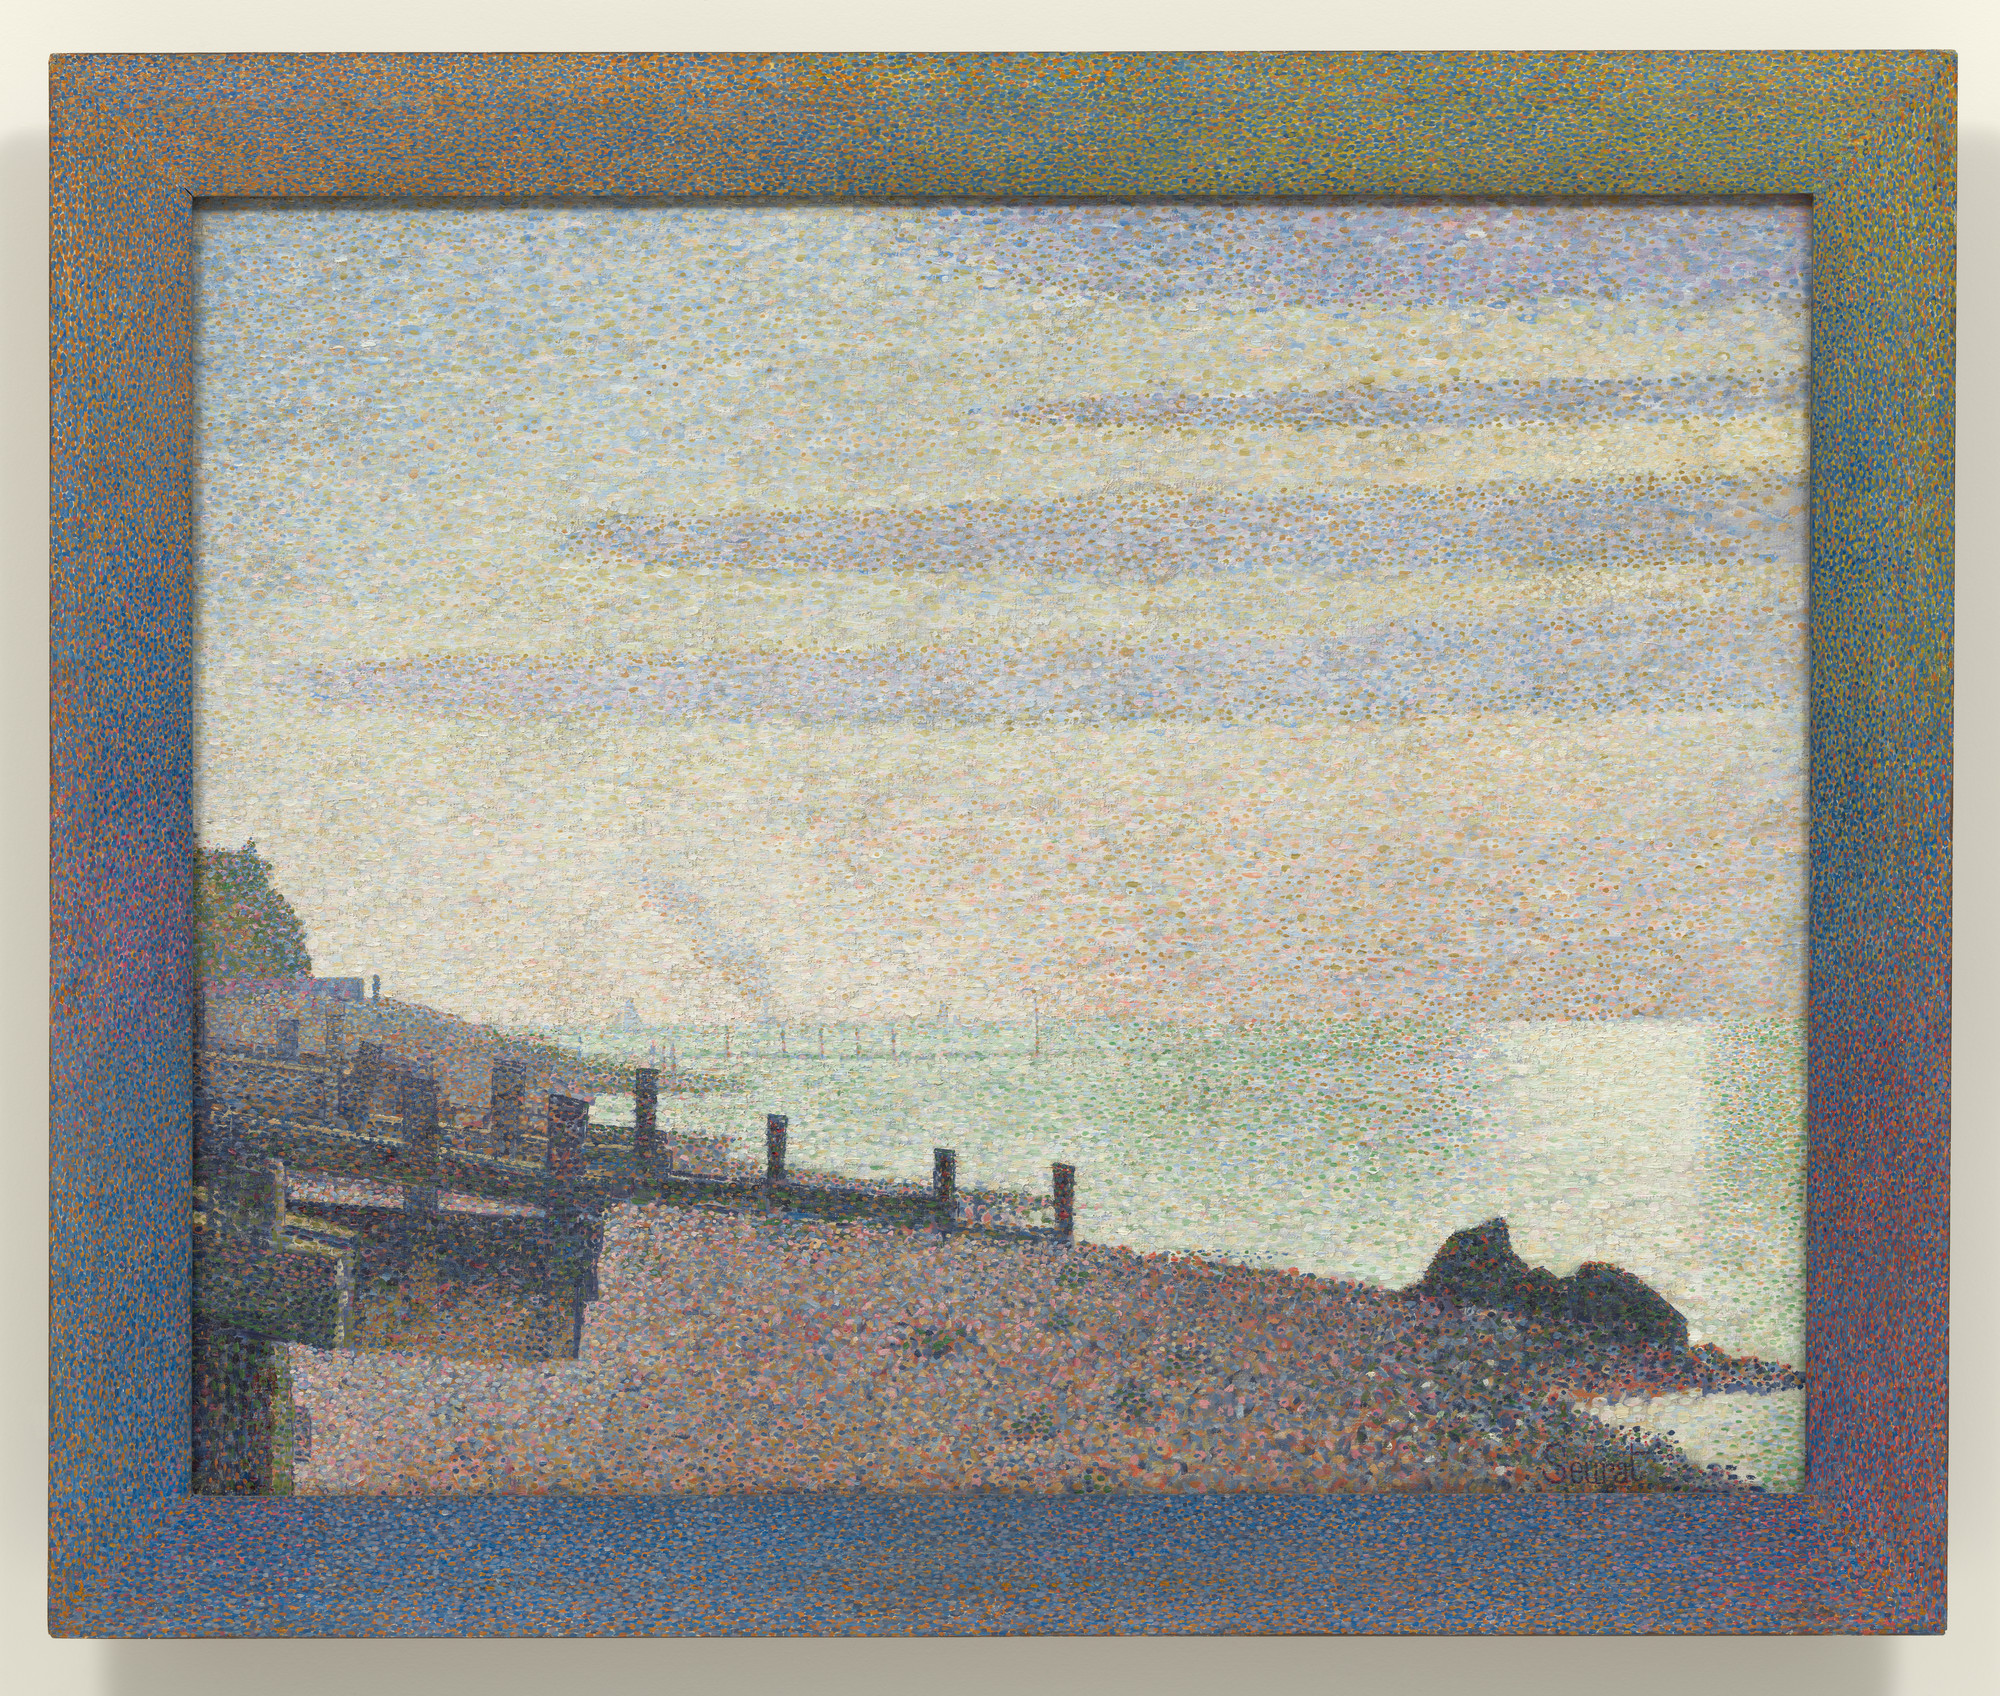 Georges-Pierre Seurat. Evening, Honfleur. 1886